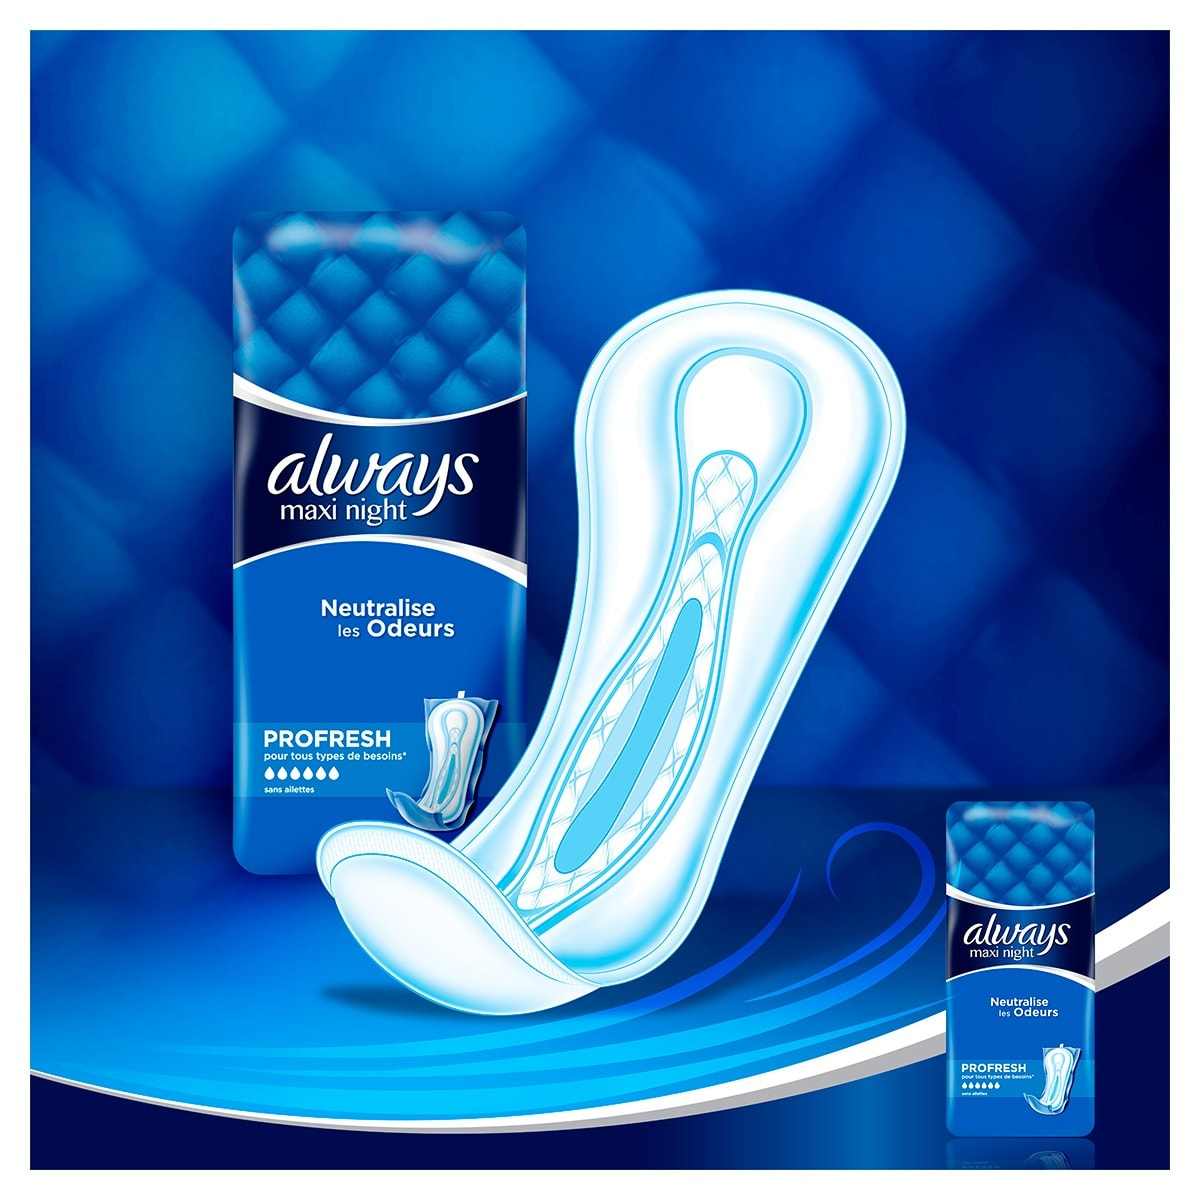 ALWAYS Maxi Night Profresh Serviettes hygiéniques 2